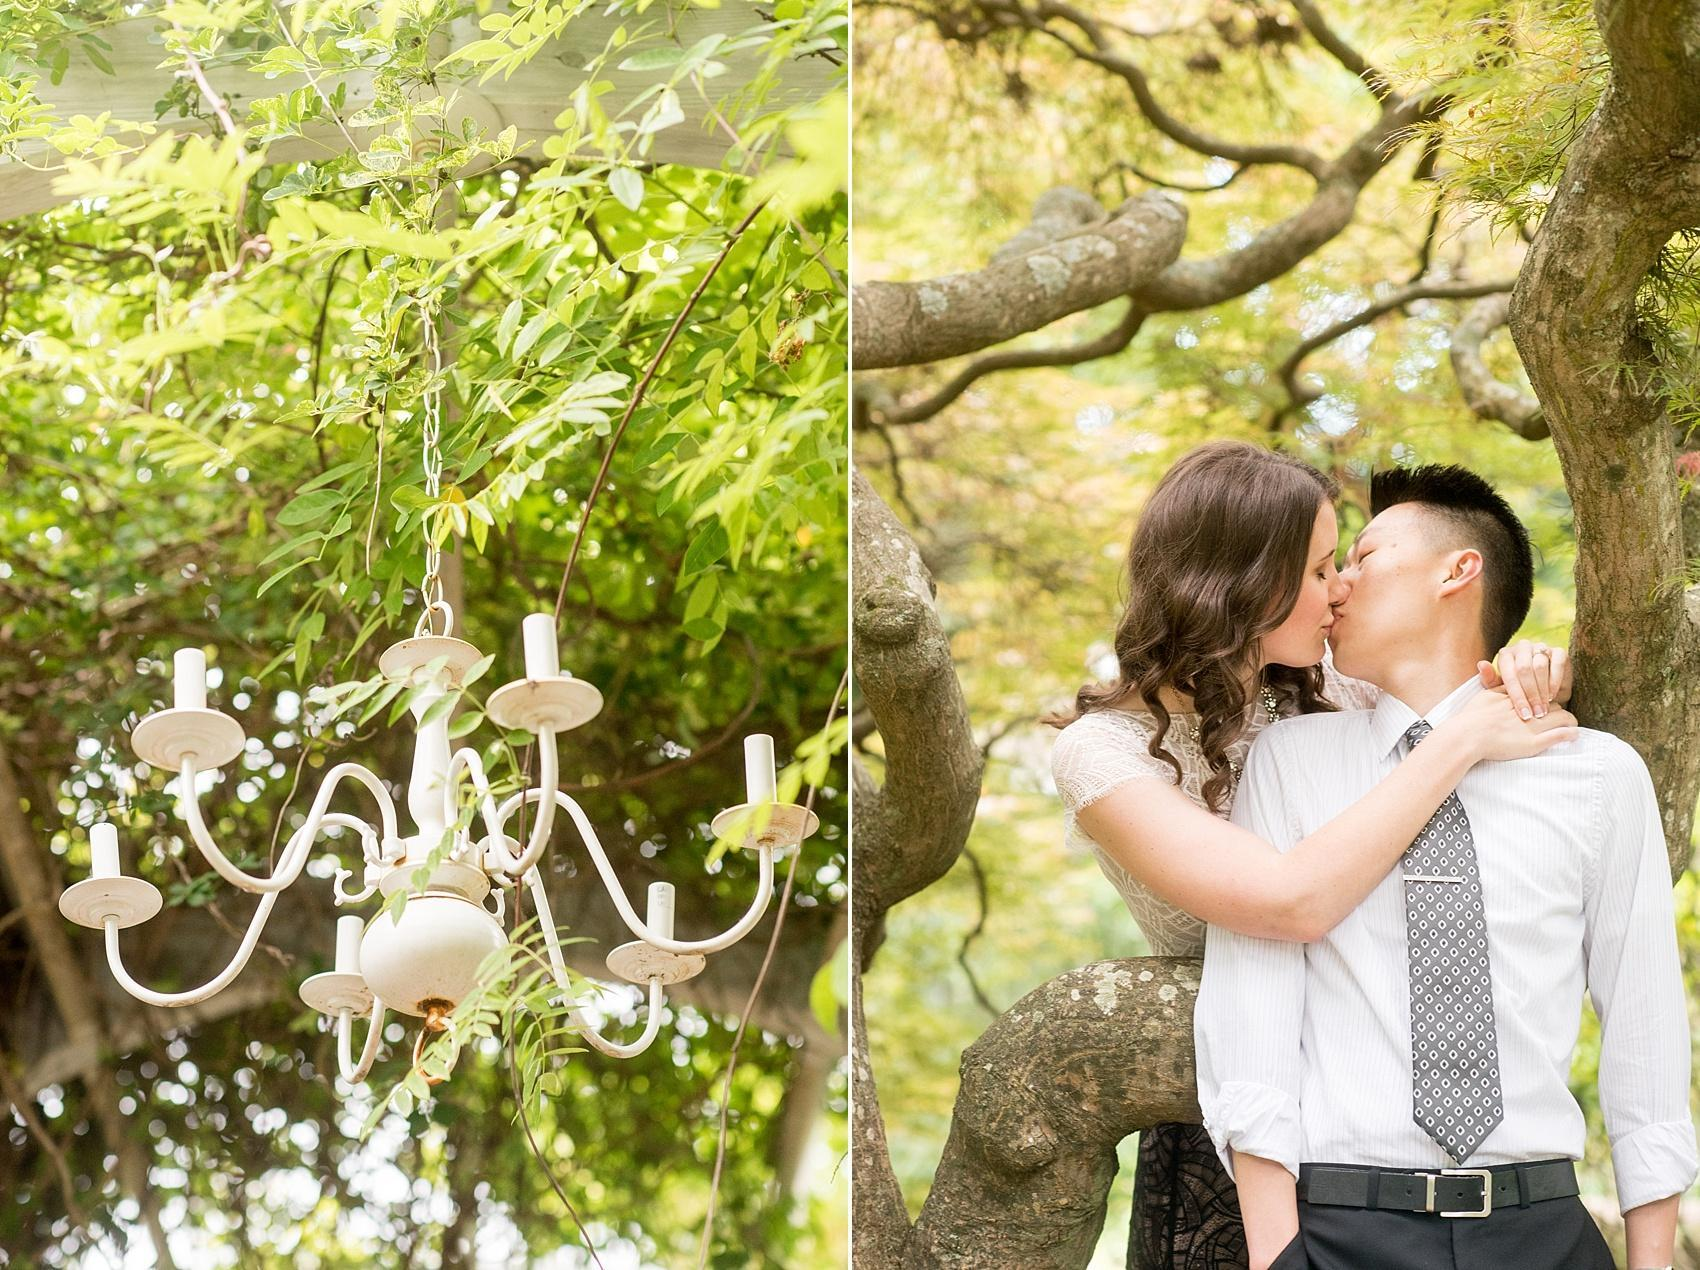 Raleigh North Carolina wedding photographer, Mikkel Paige Photography, photographs a romantic outdoor engagement session at Raulston Arboretum at NC State campus.